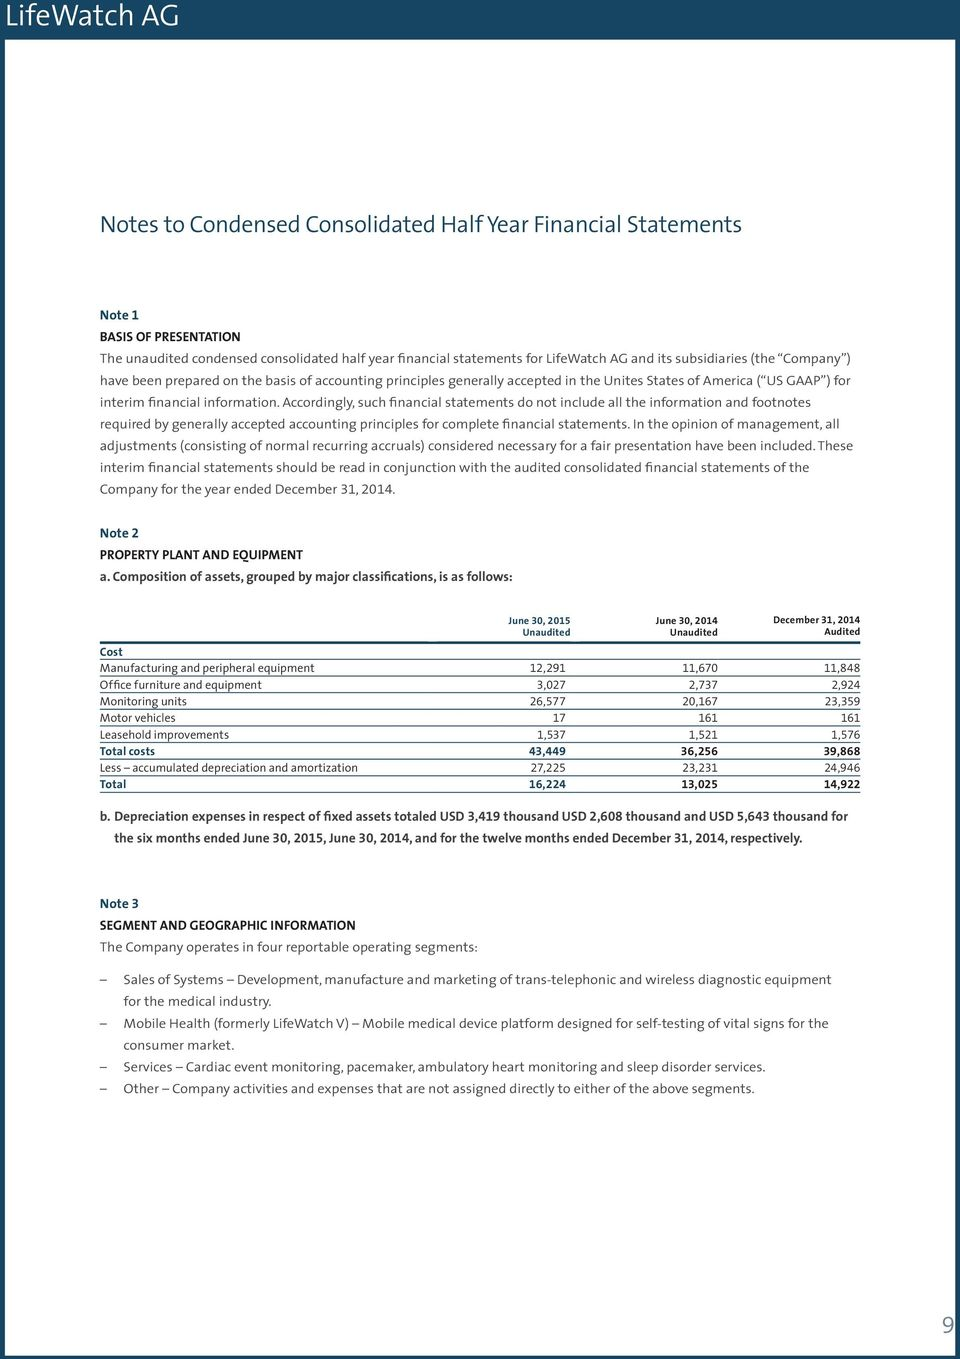 Accordingly, such financial statements do not include all the information and footnotes required by generally accepted accounting principles for complete financial statements.